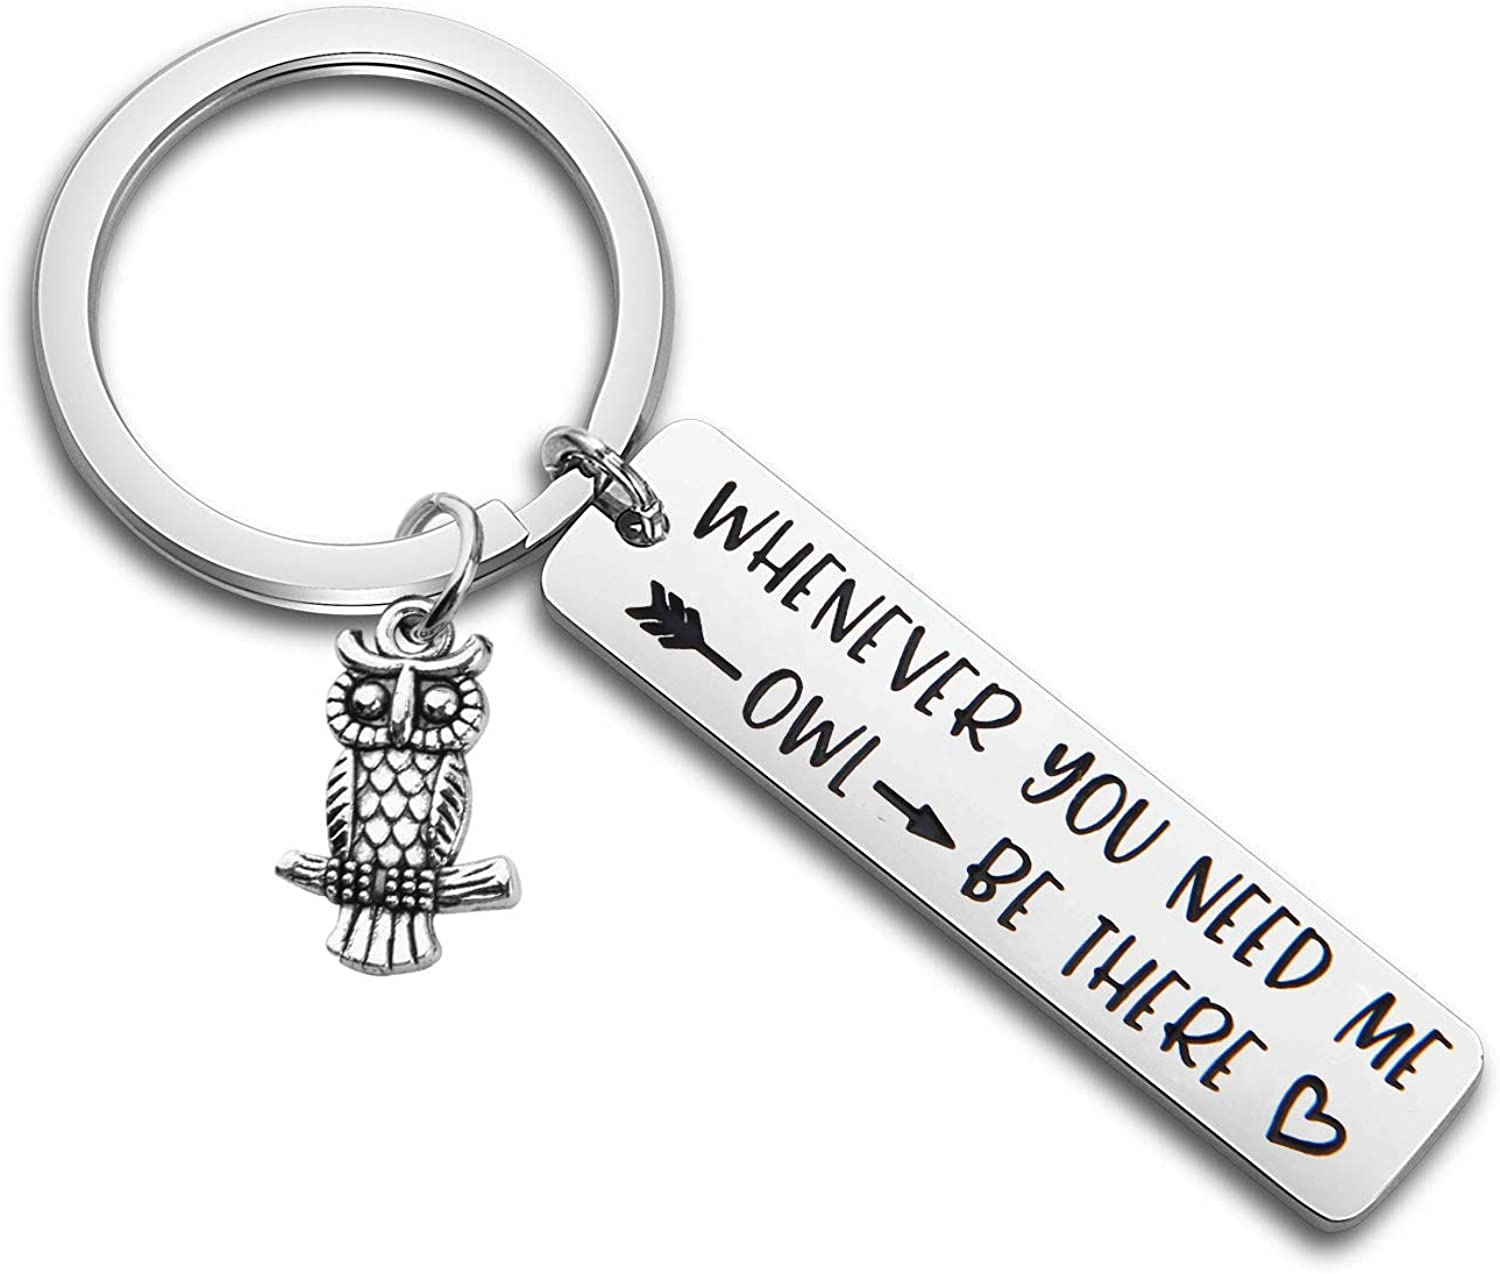 MAOFAED Owl Keychain BFF Keychain Friendship Keychain Whenever You Need Me Owl Be There Sympathy Gift Stay Strong Gift